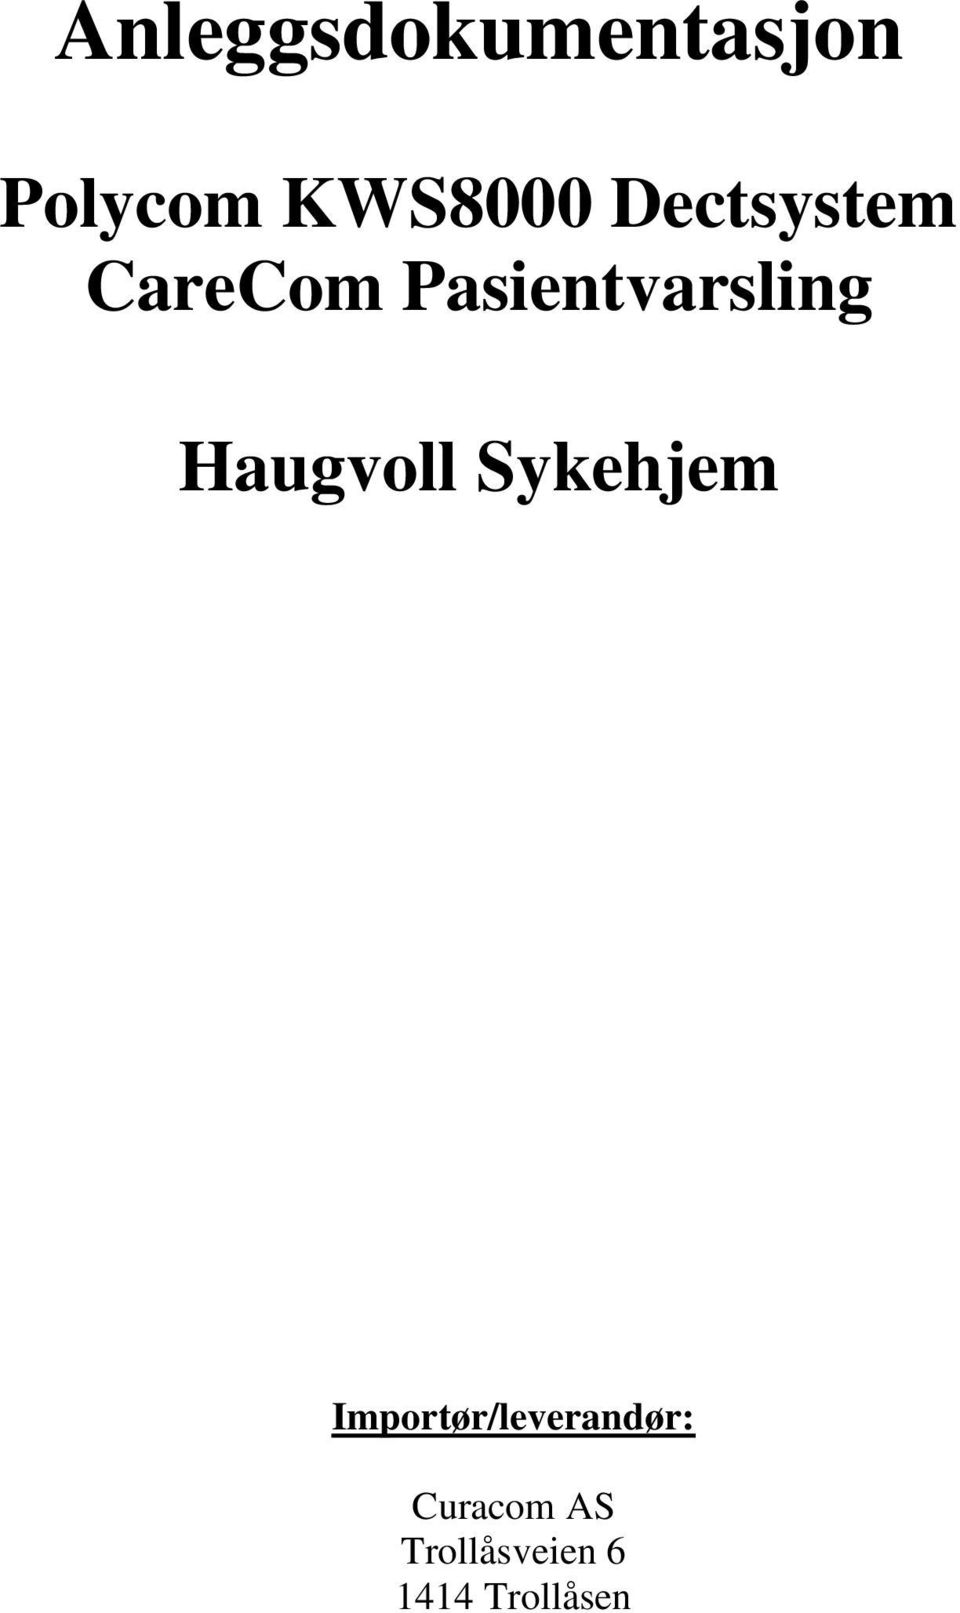 Haugvoll Sykehjem